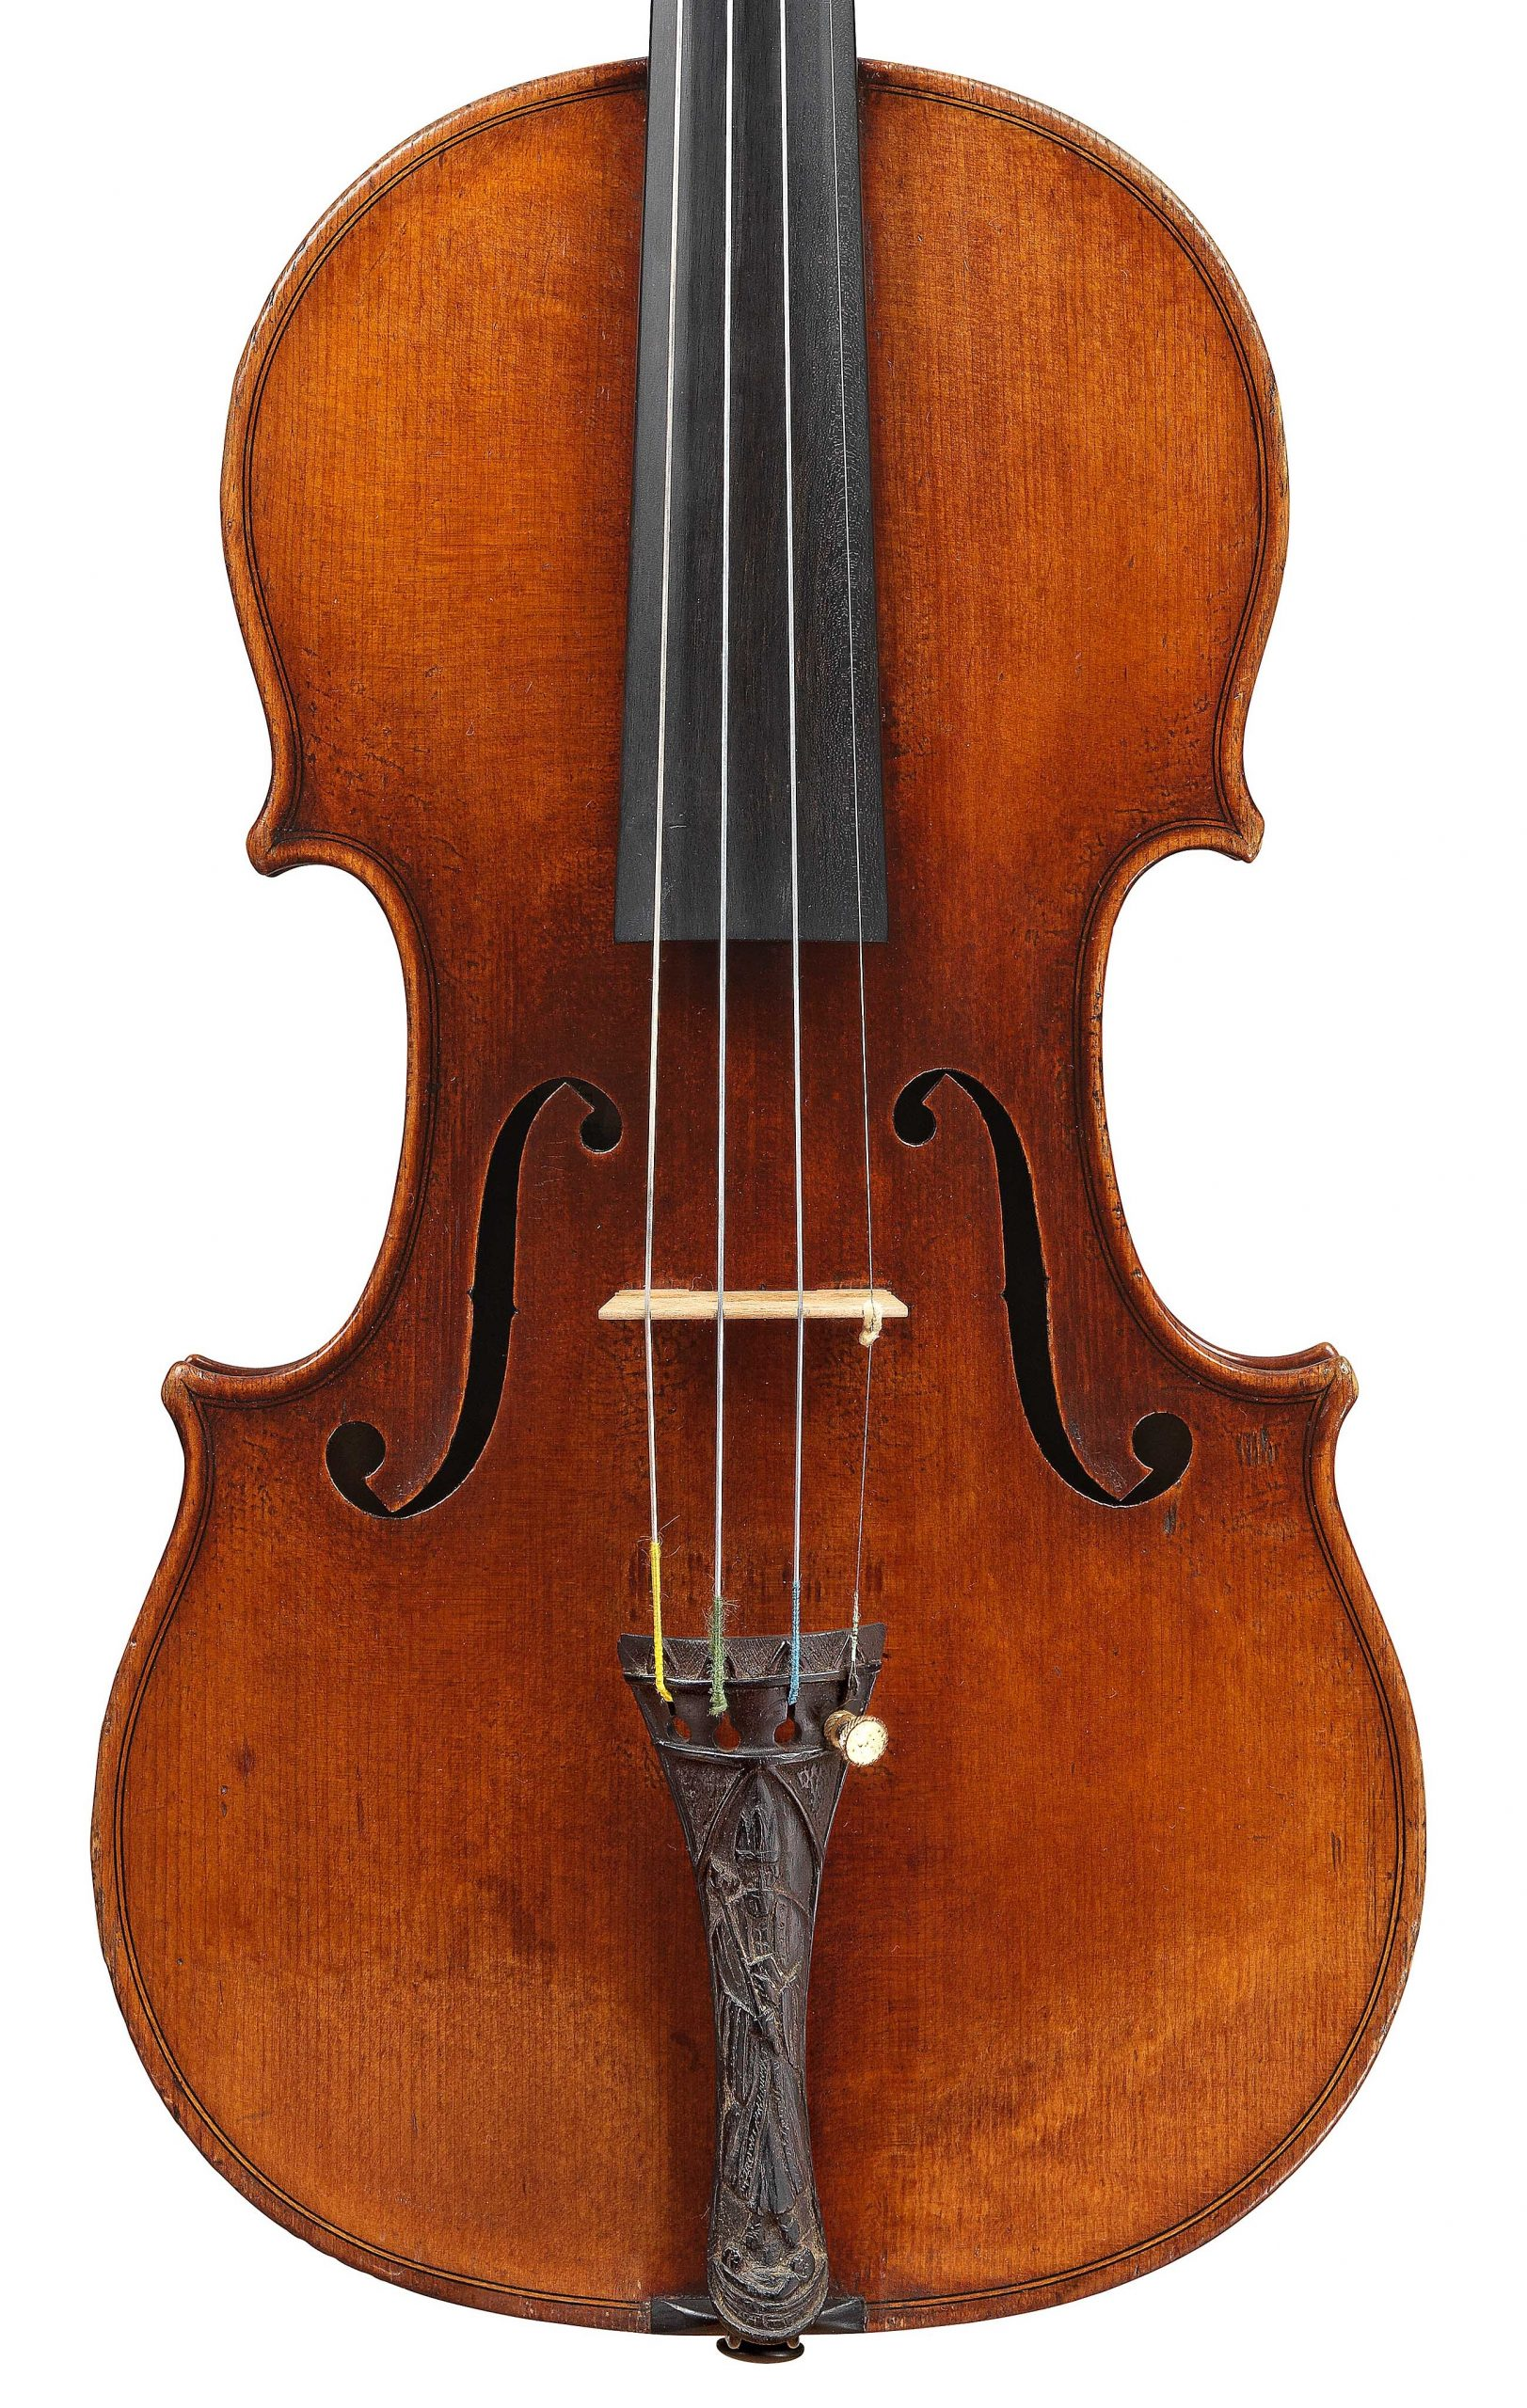 Front of violin by JB Vuillaume, St. Nicolas, dated 1872, exhibited by Ingles & Hayday at Sotheby's in 2012